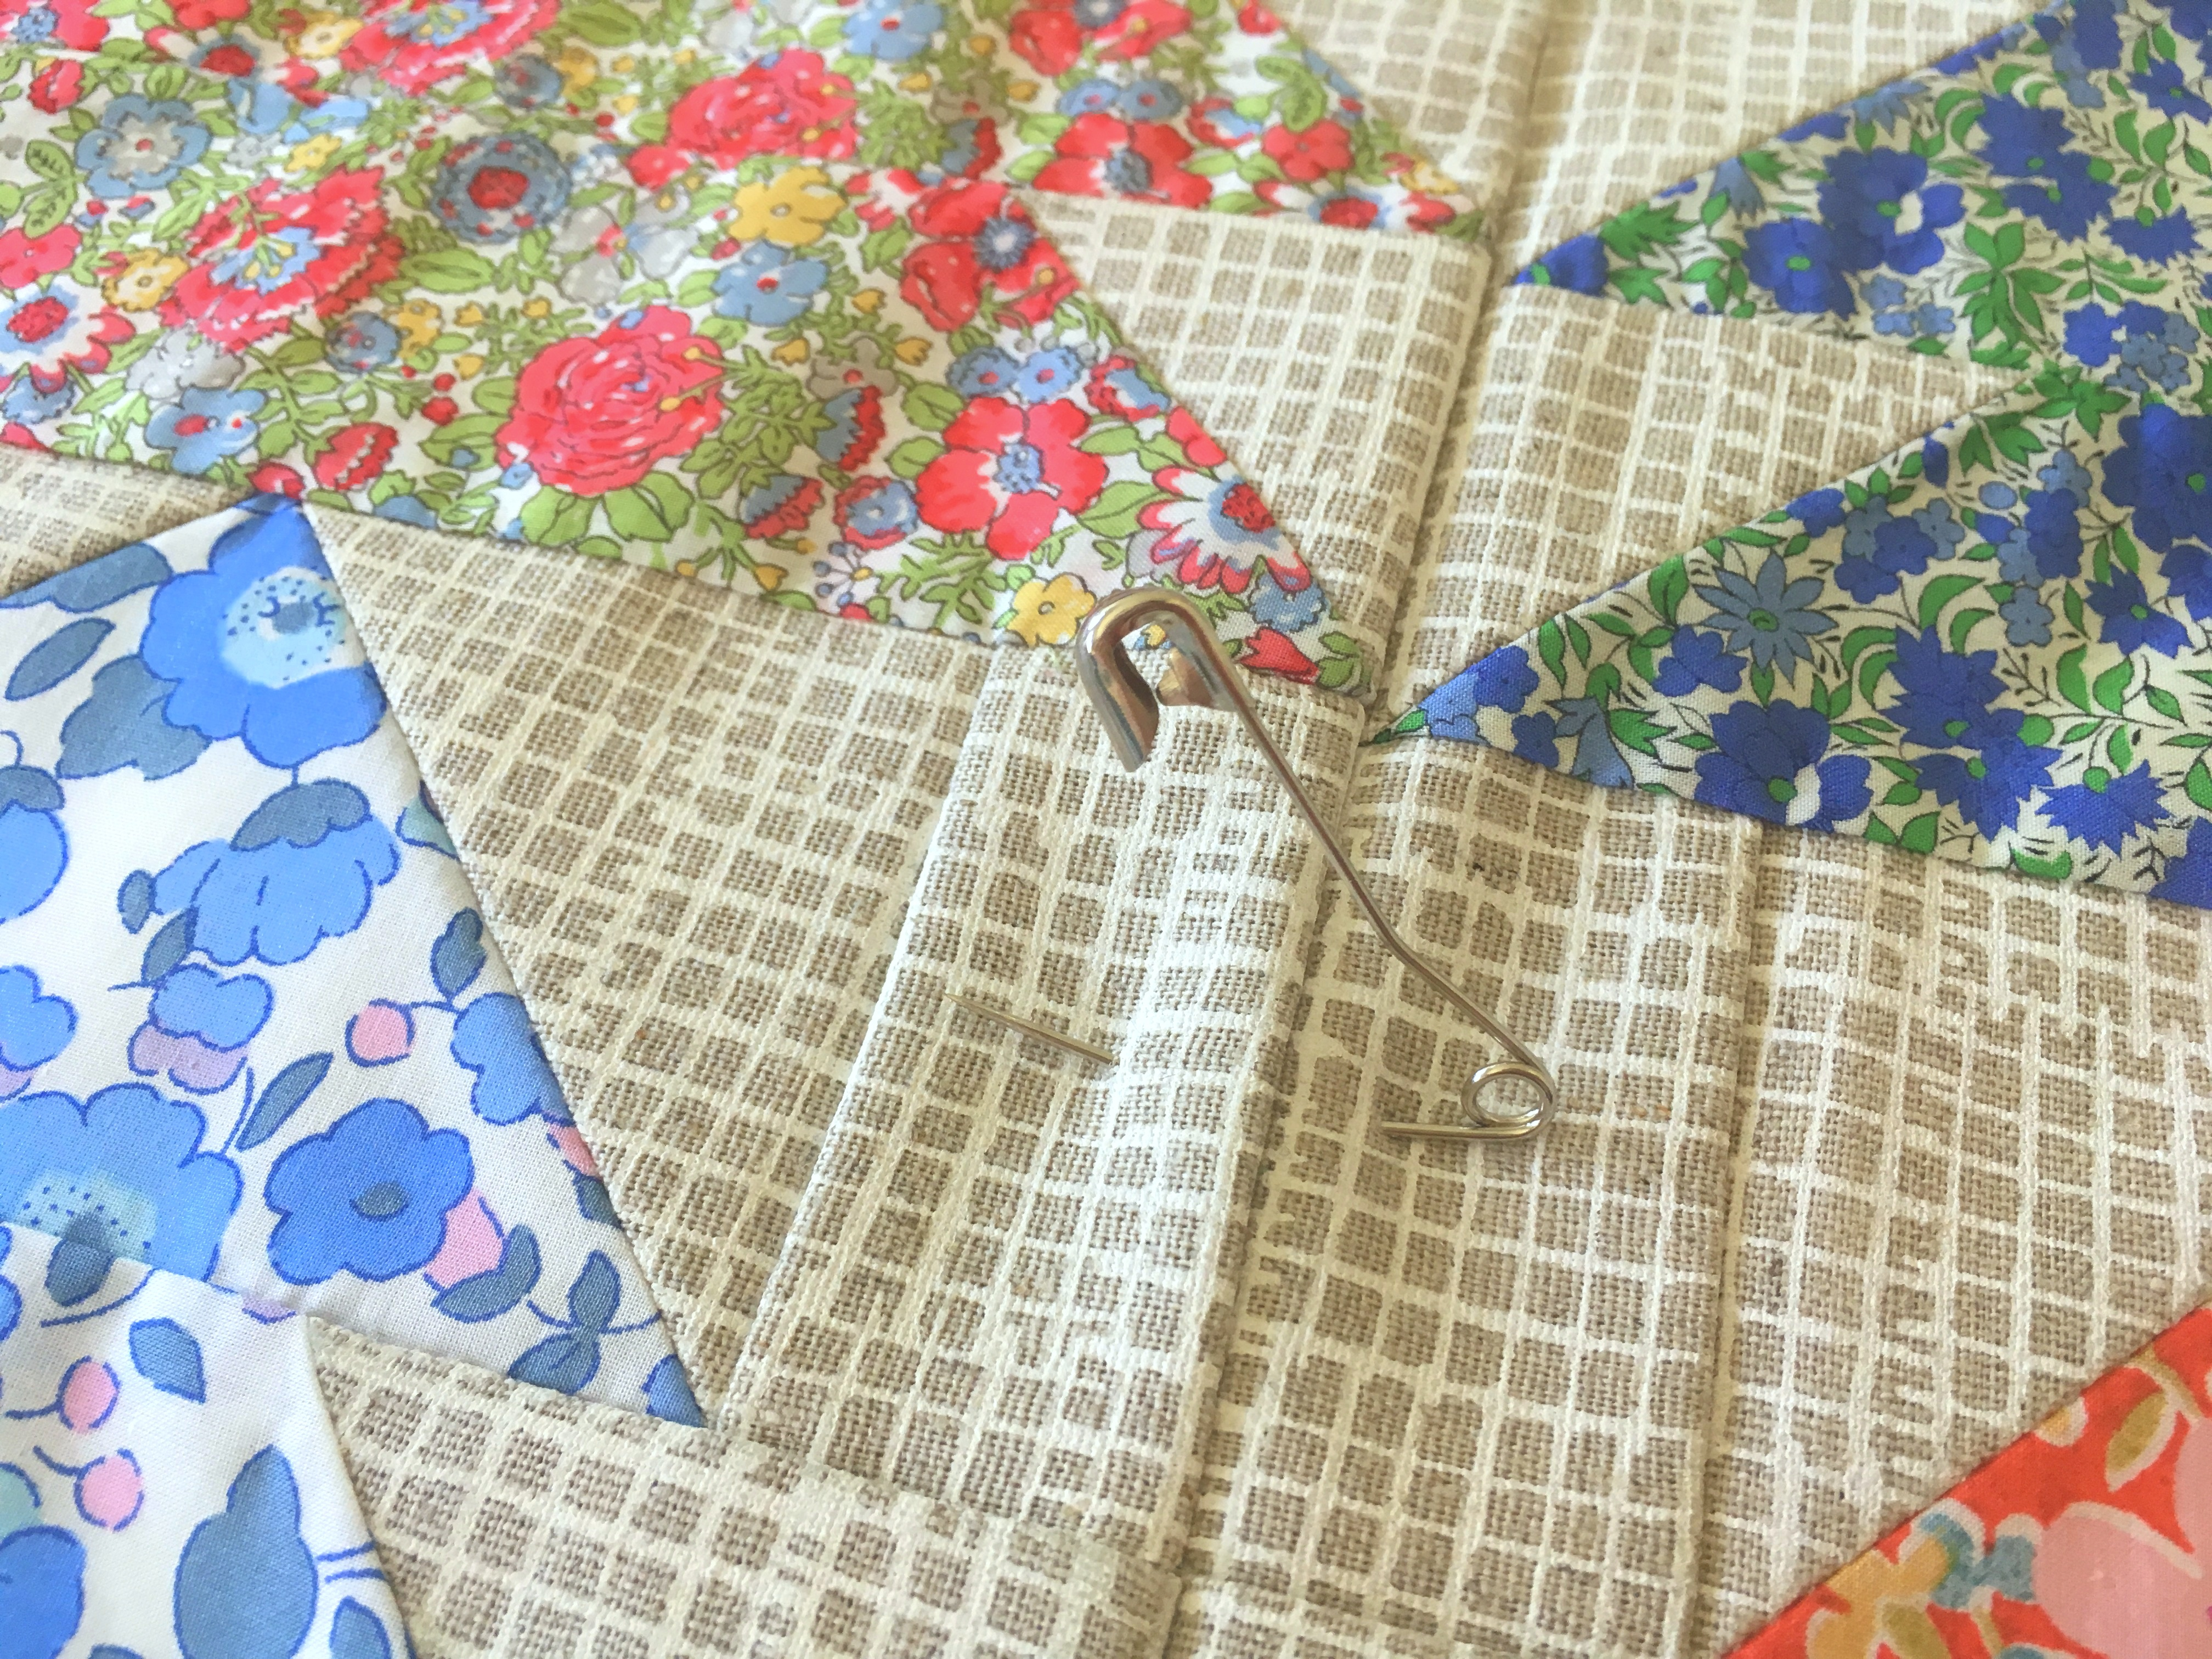 How To Baste A Quilt - Pins And Spray | Blossom Heart Quilts : basting quilt - Adamdwight.com